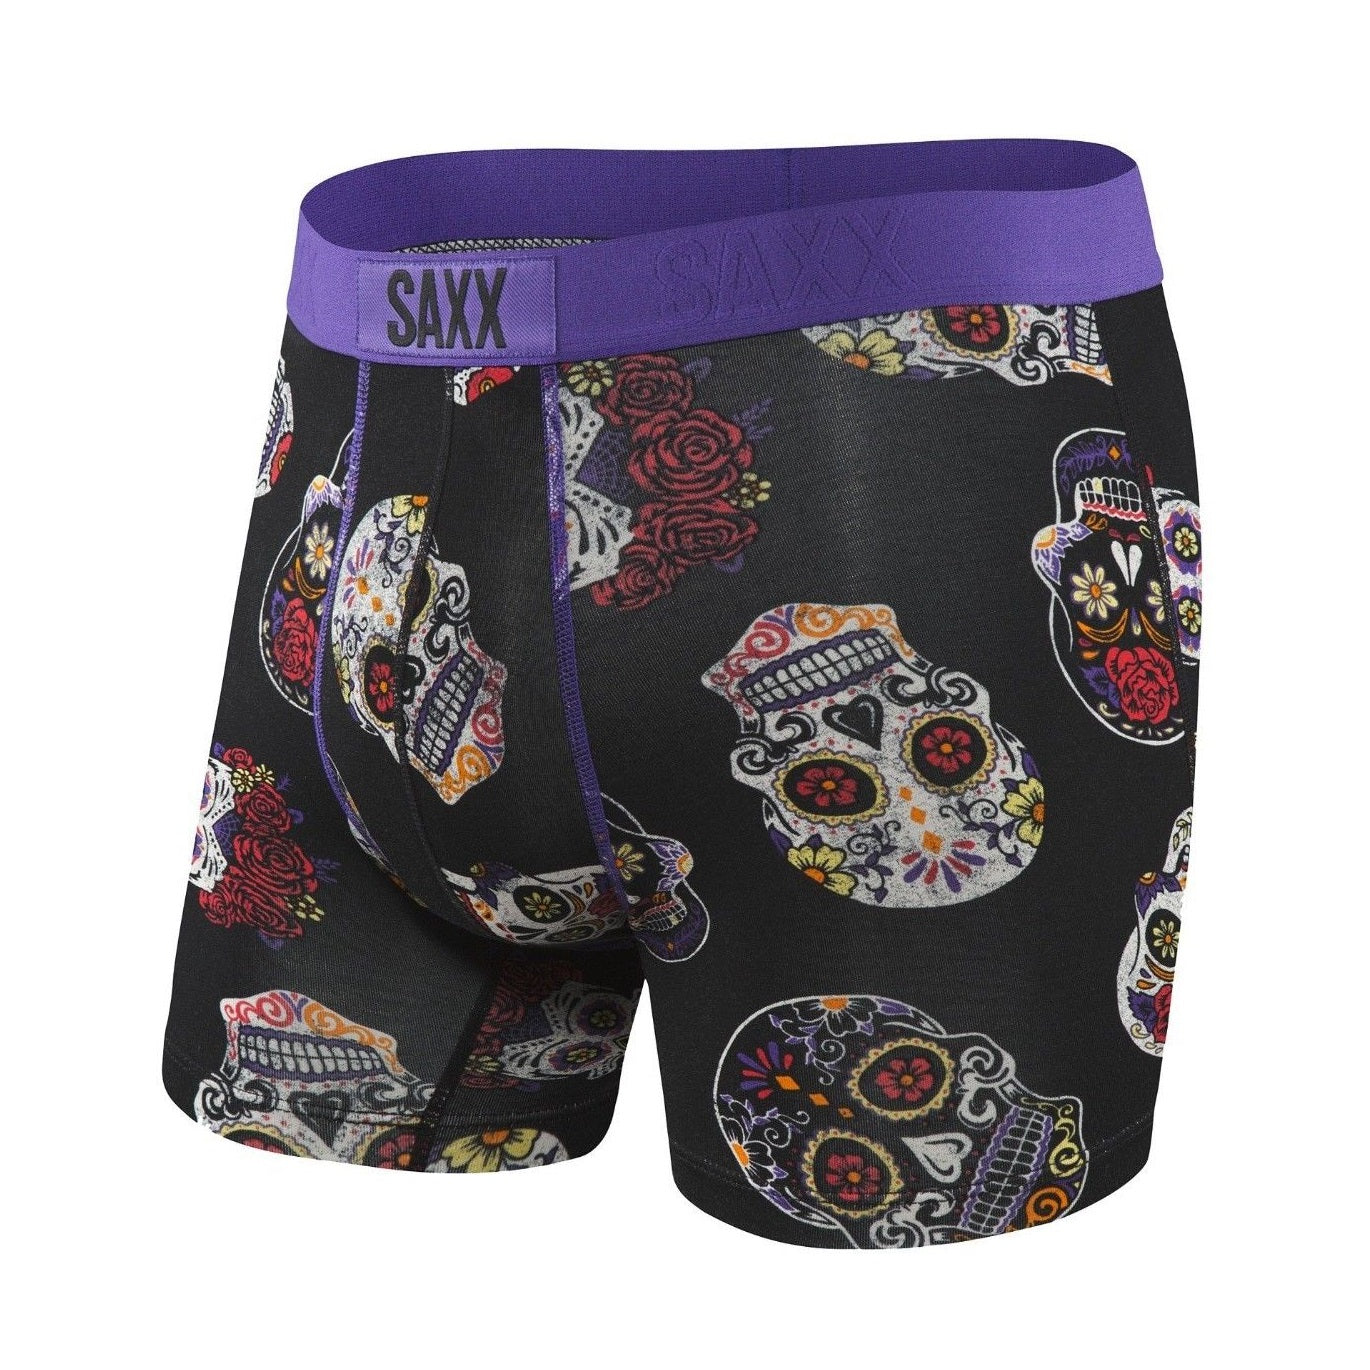 SAXX Vibe Boxer Brief - Day of the Dead